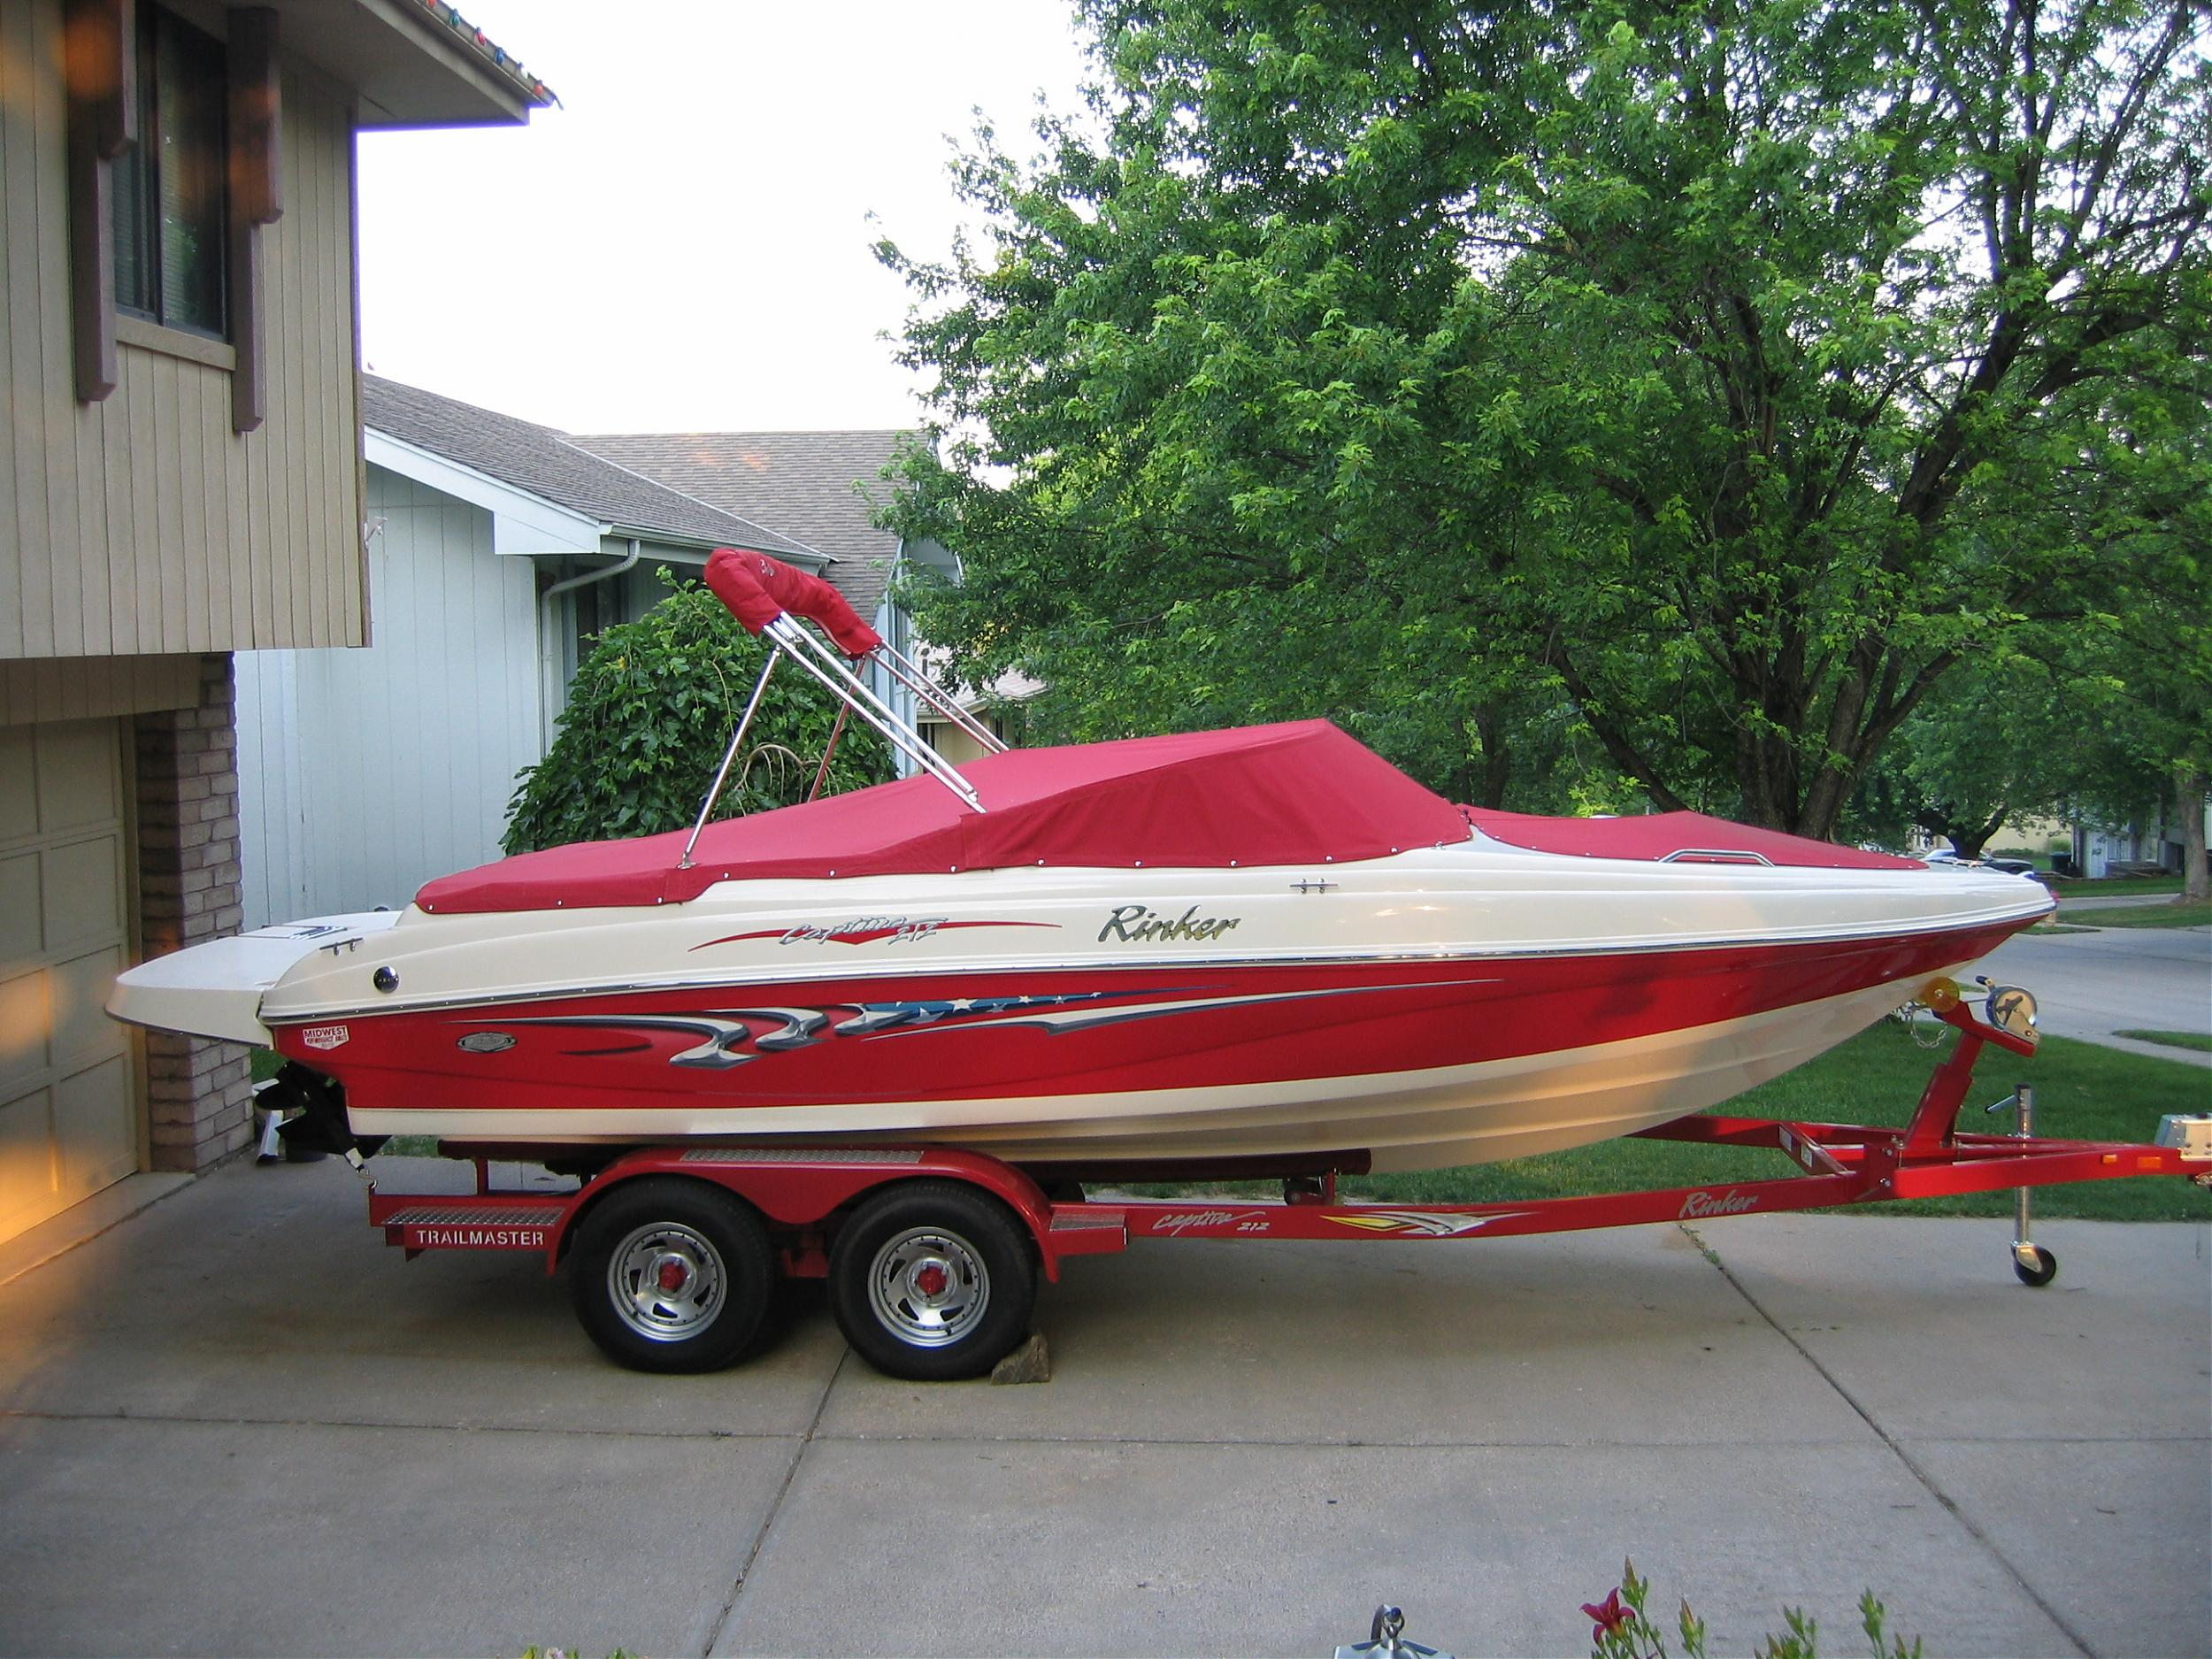 Boat for sale in knoxville tn